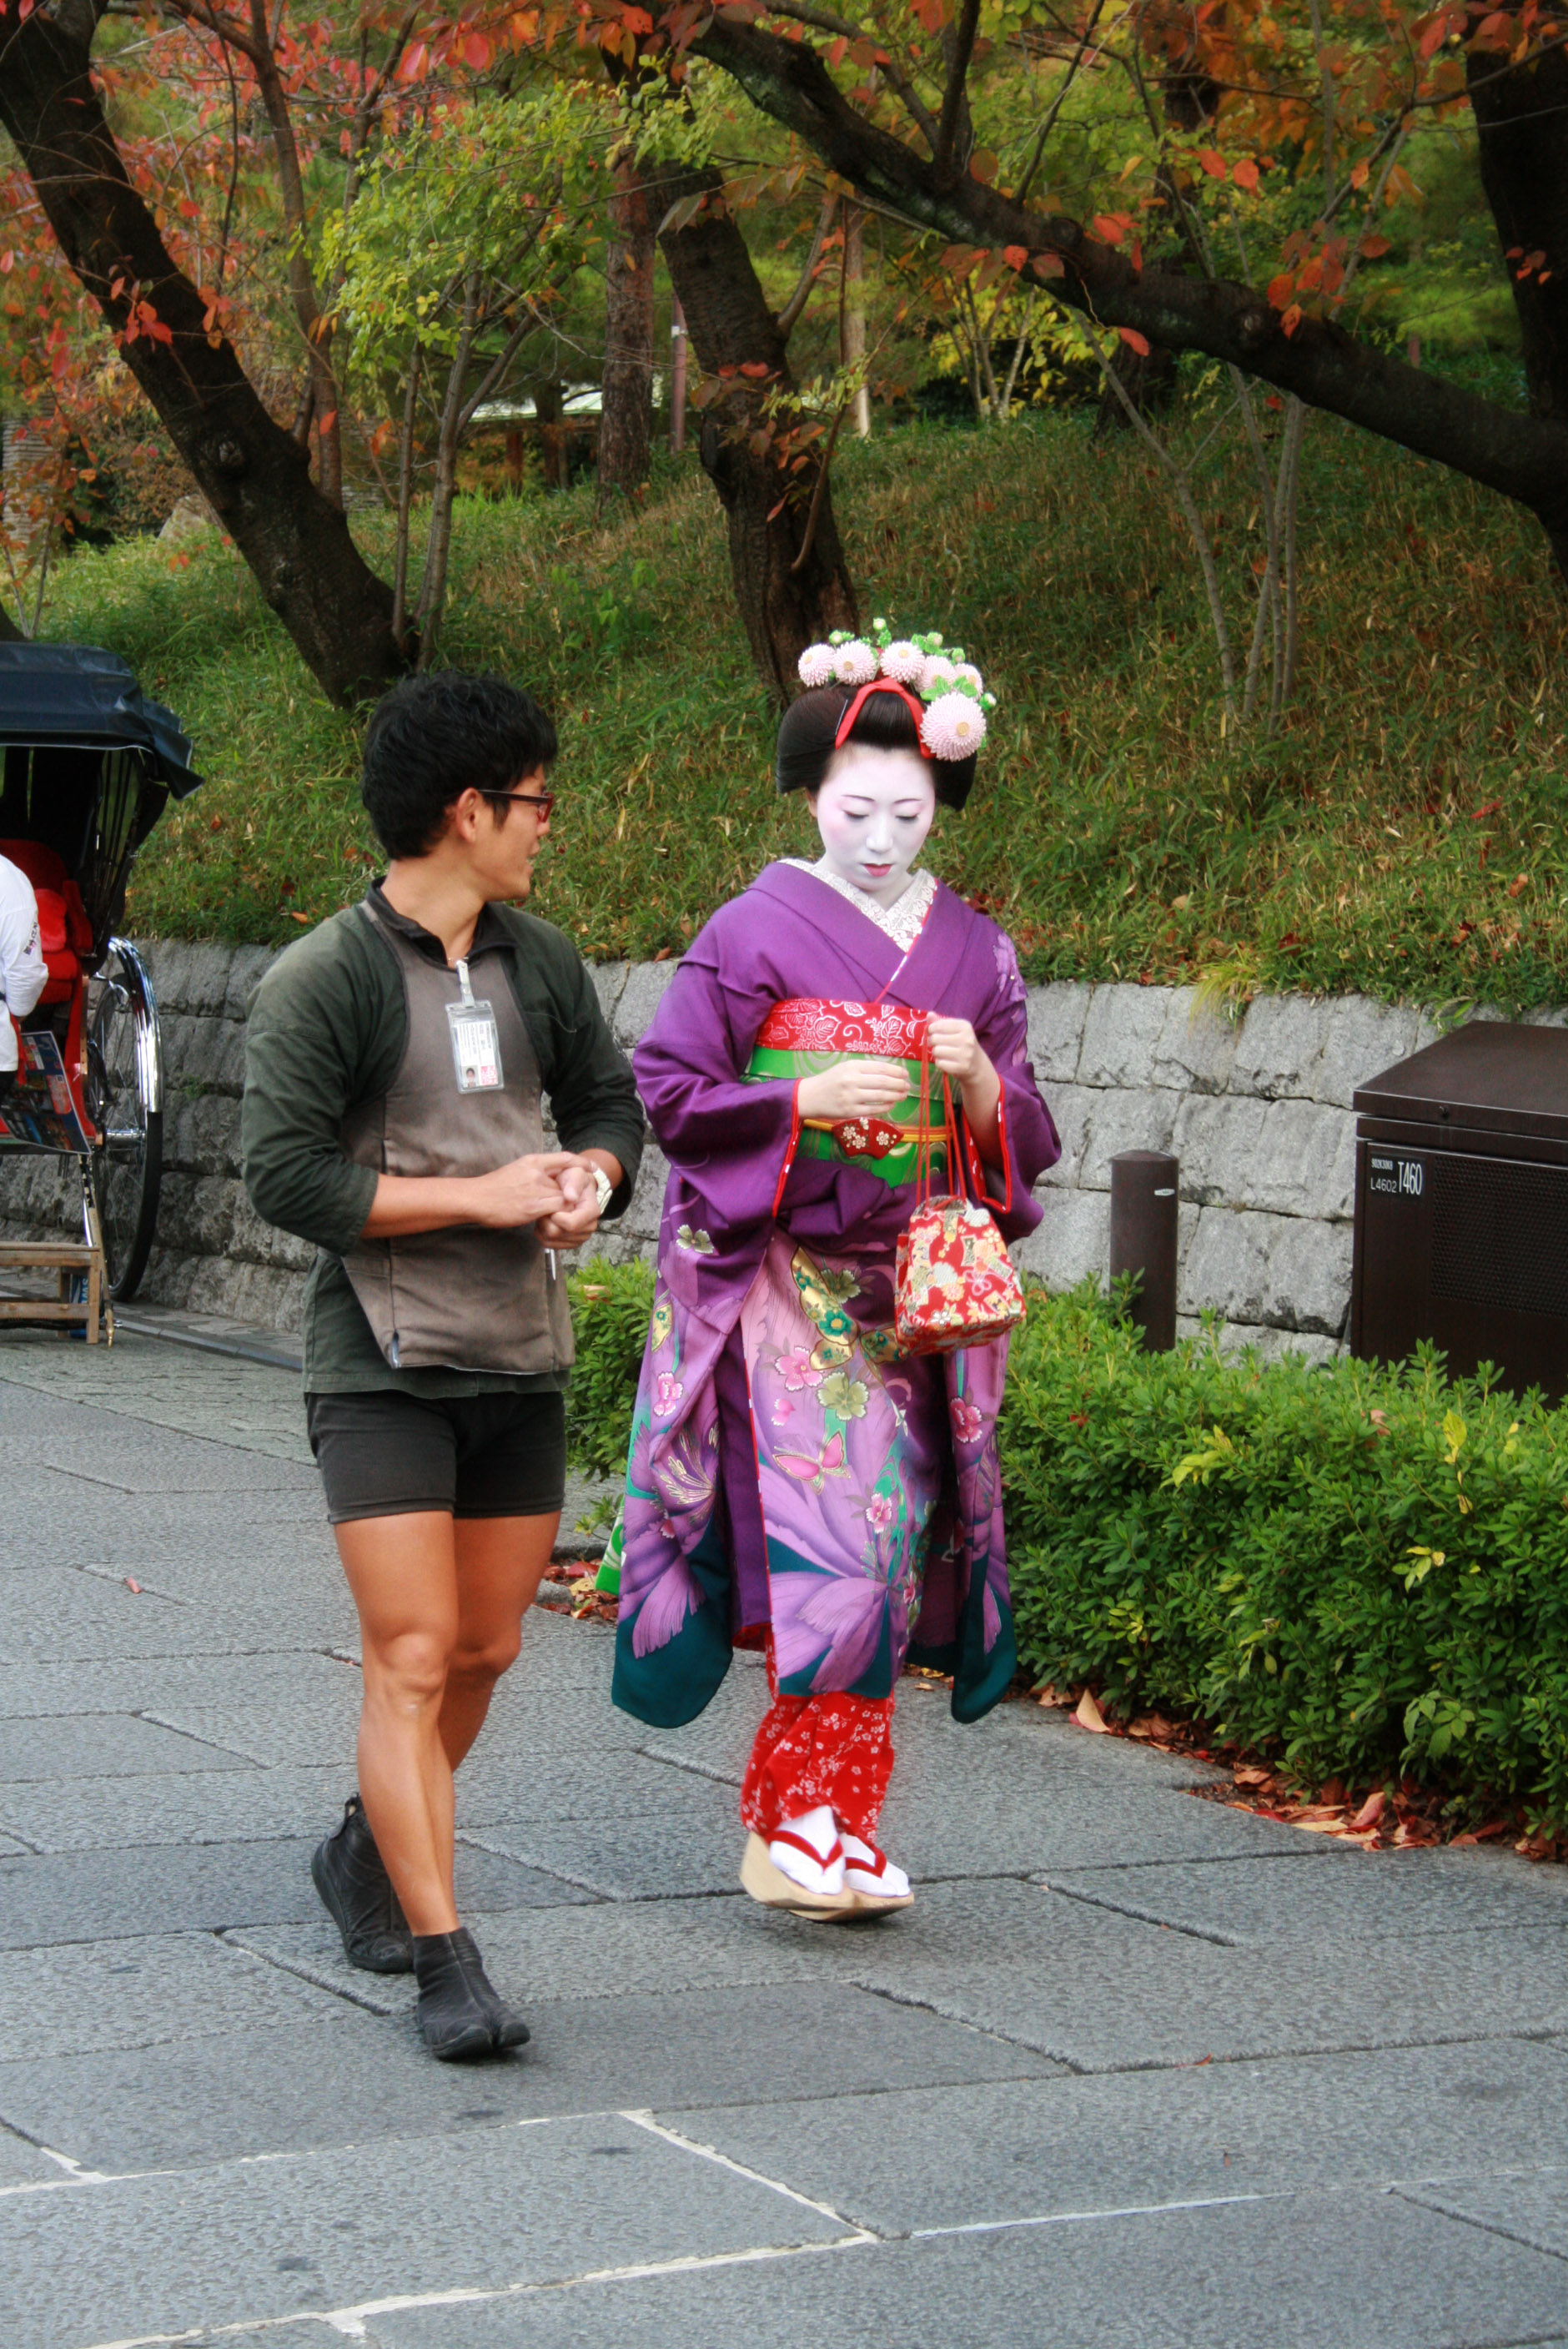 This was the first geisha we saw walking around town. Please check out her specialty socks that separate the big toe from the other toes and are made just for those shoes. Fun fact about Gion (another district of Kyoto beside S. Higashiyama): You can pay to become a  maiko  (apprentice geisha) which includes full make-up and a formal kimono.